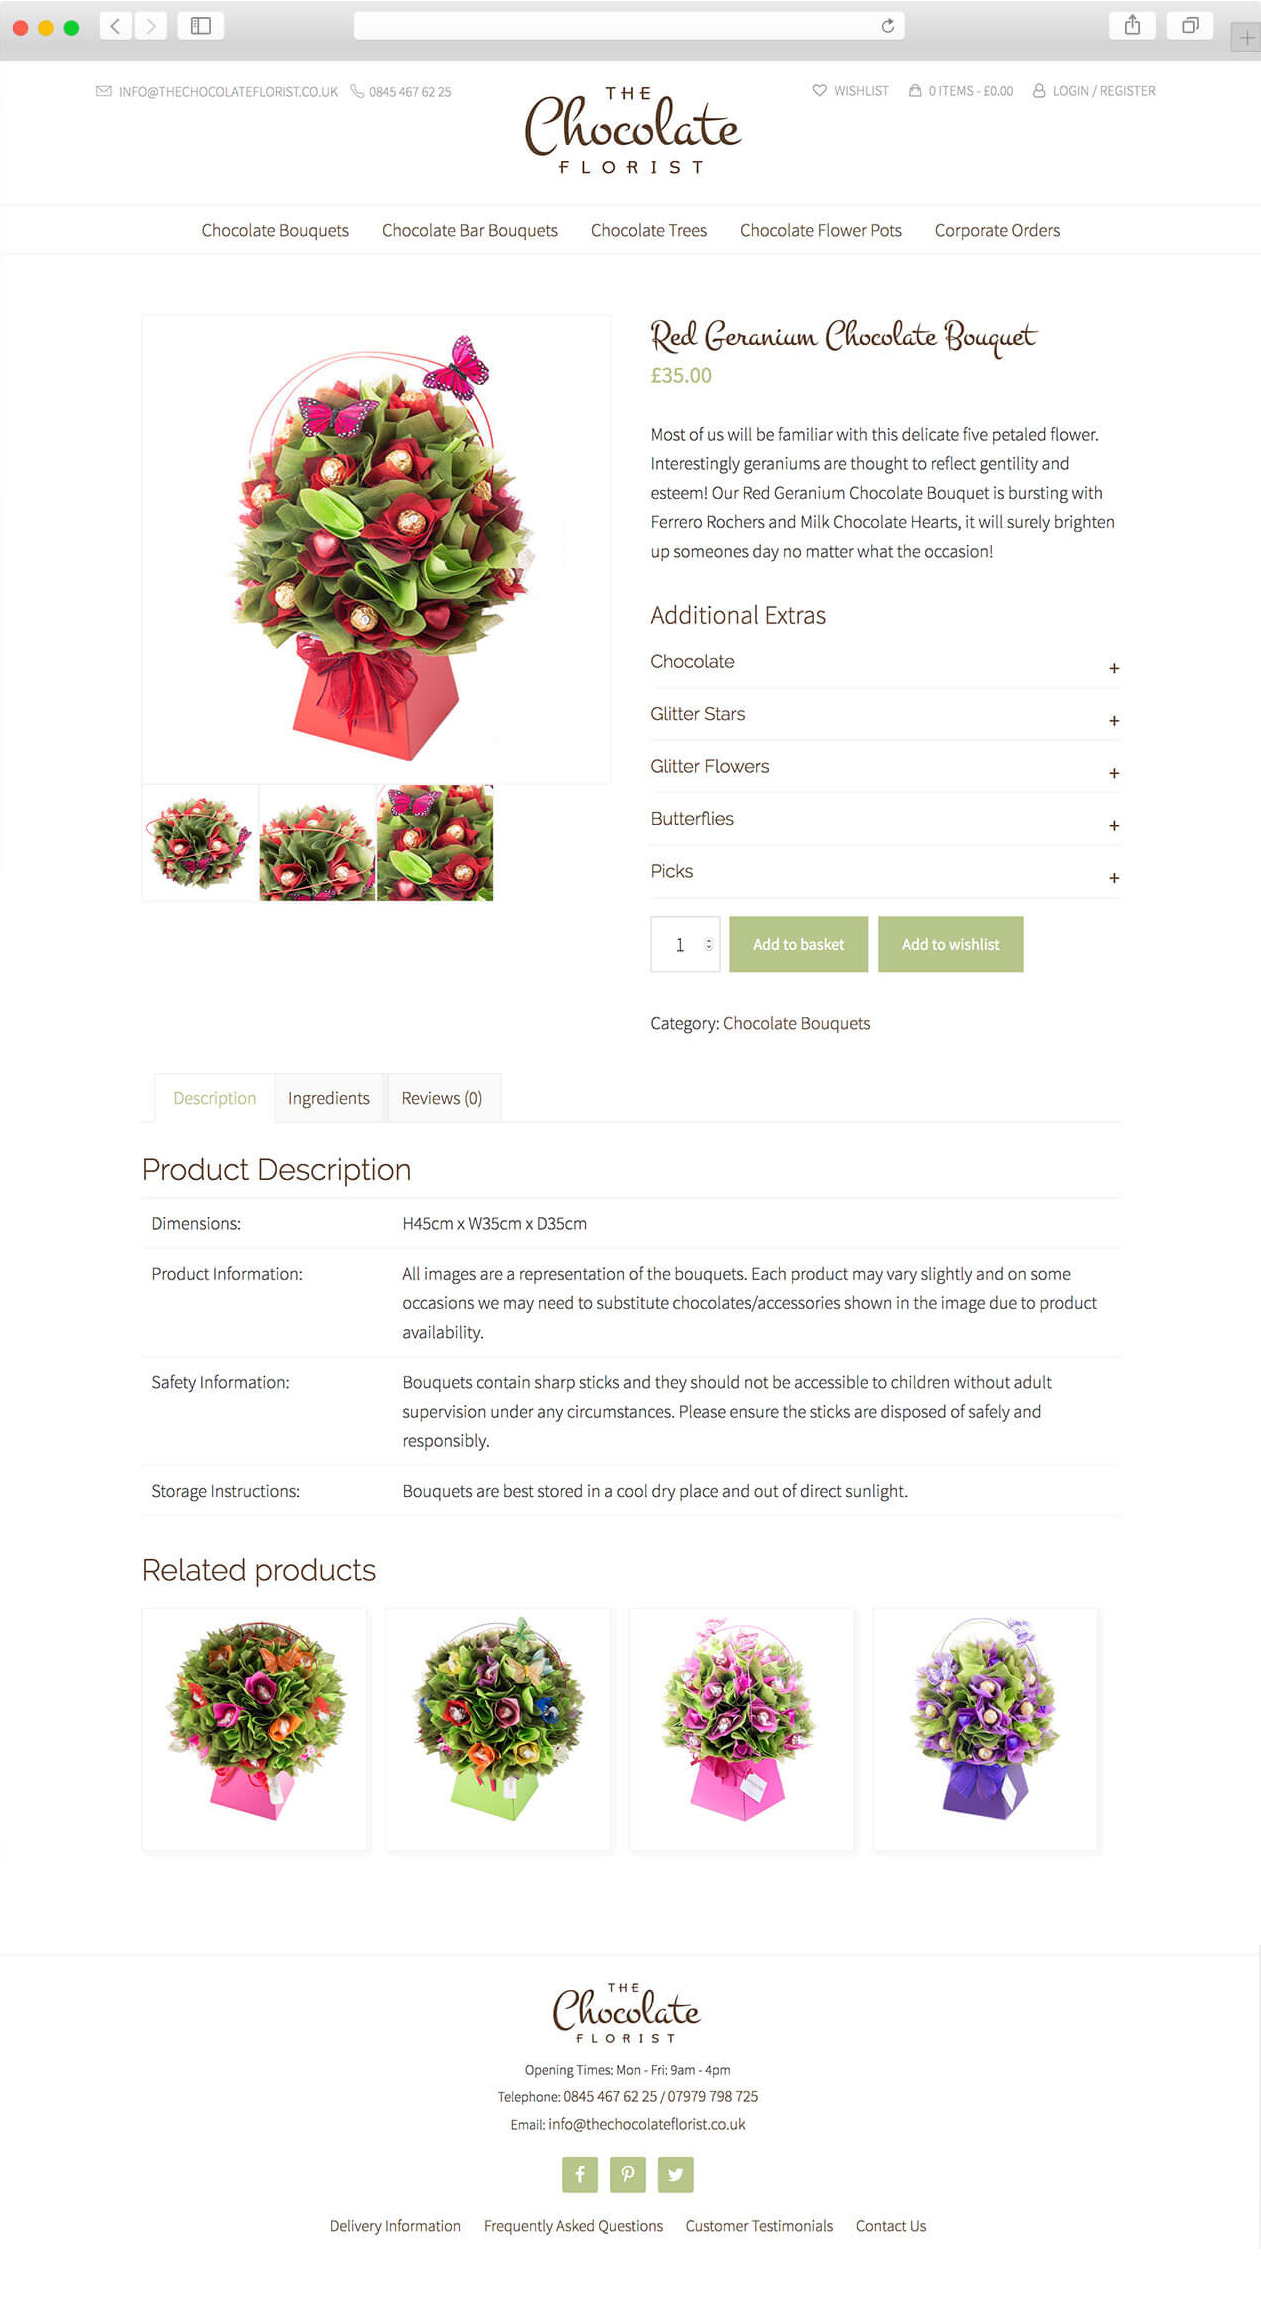 The Chocolate Florist website product page.